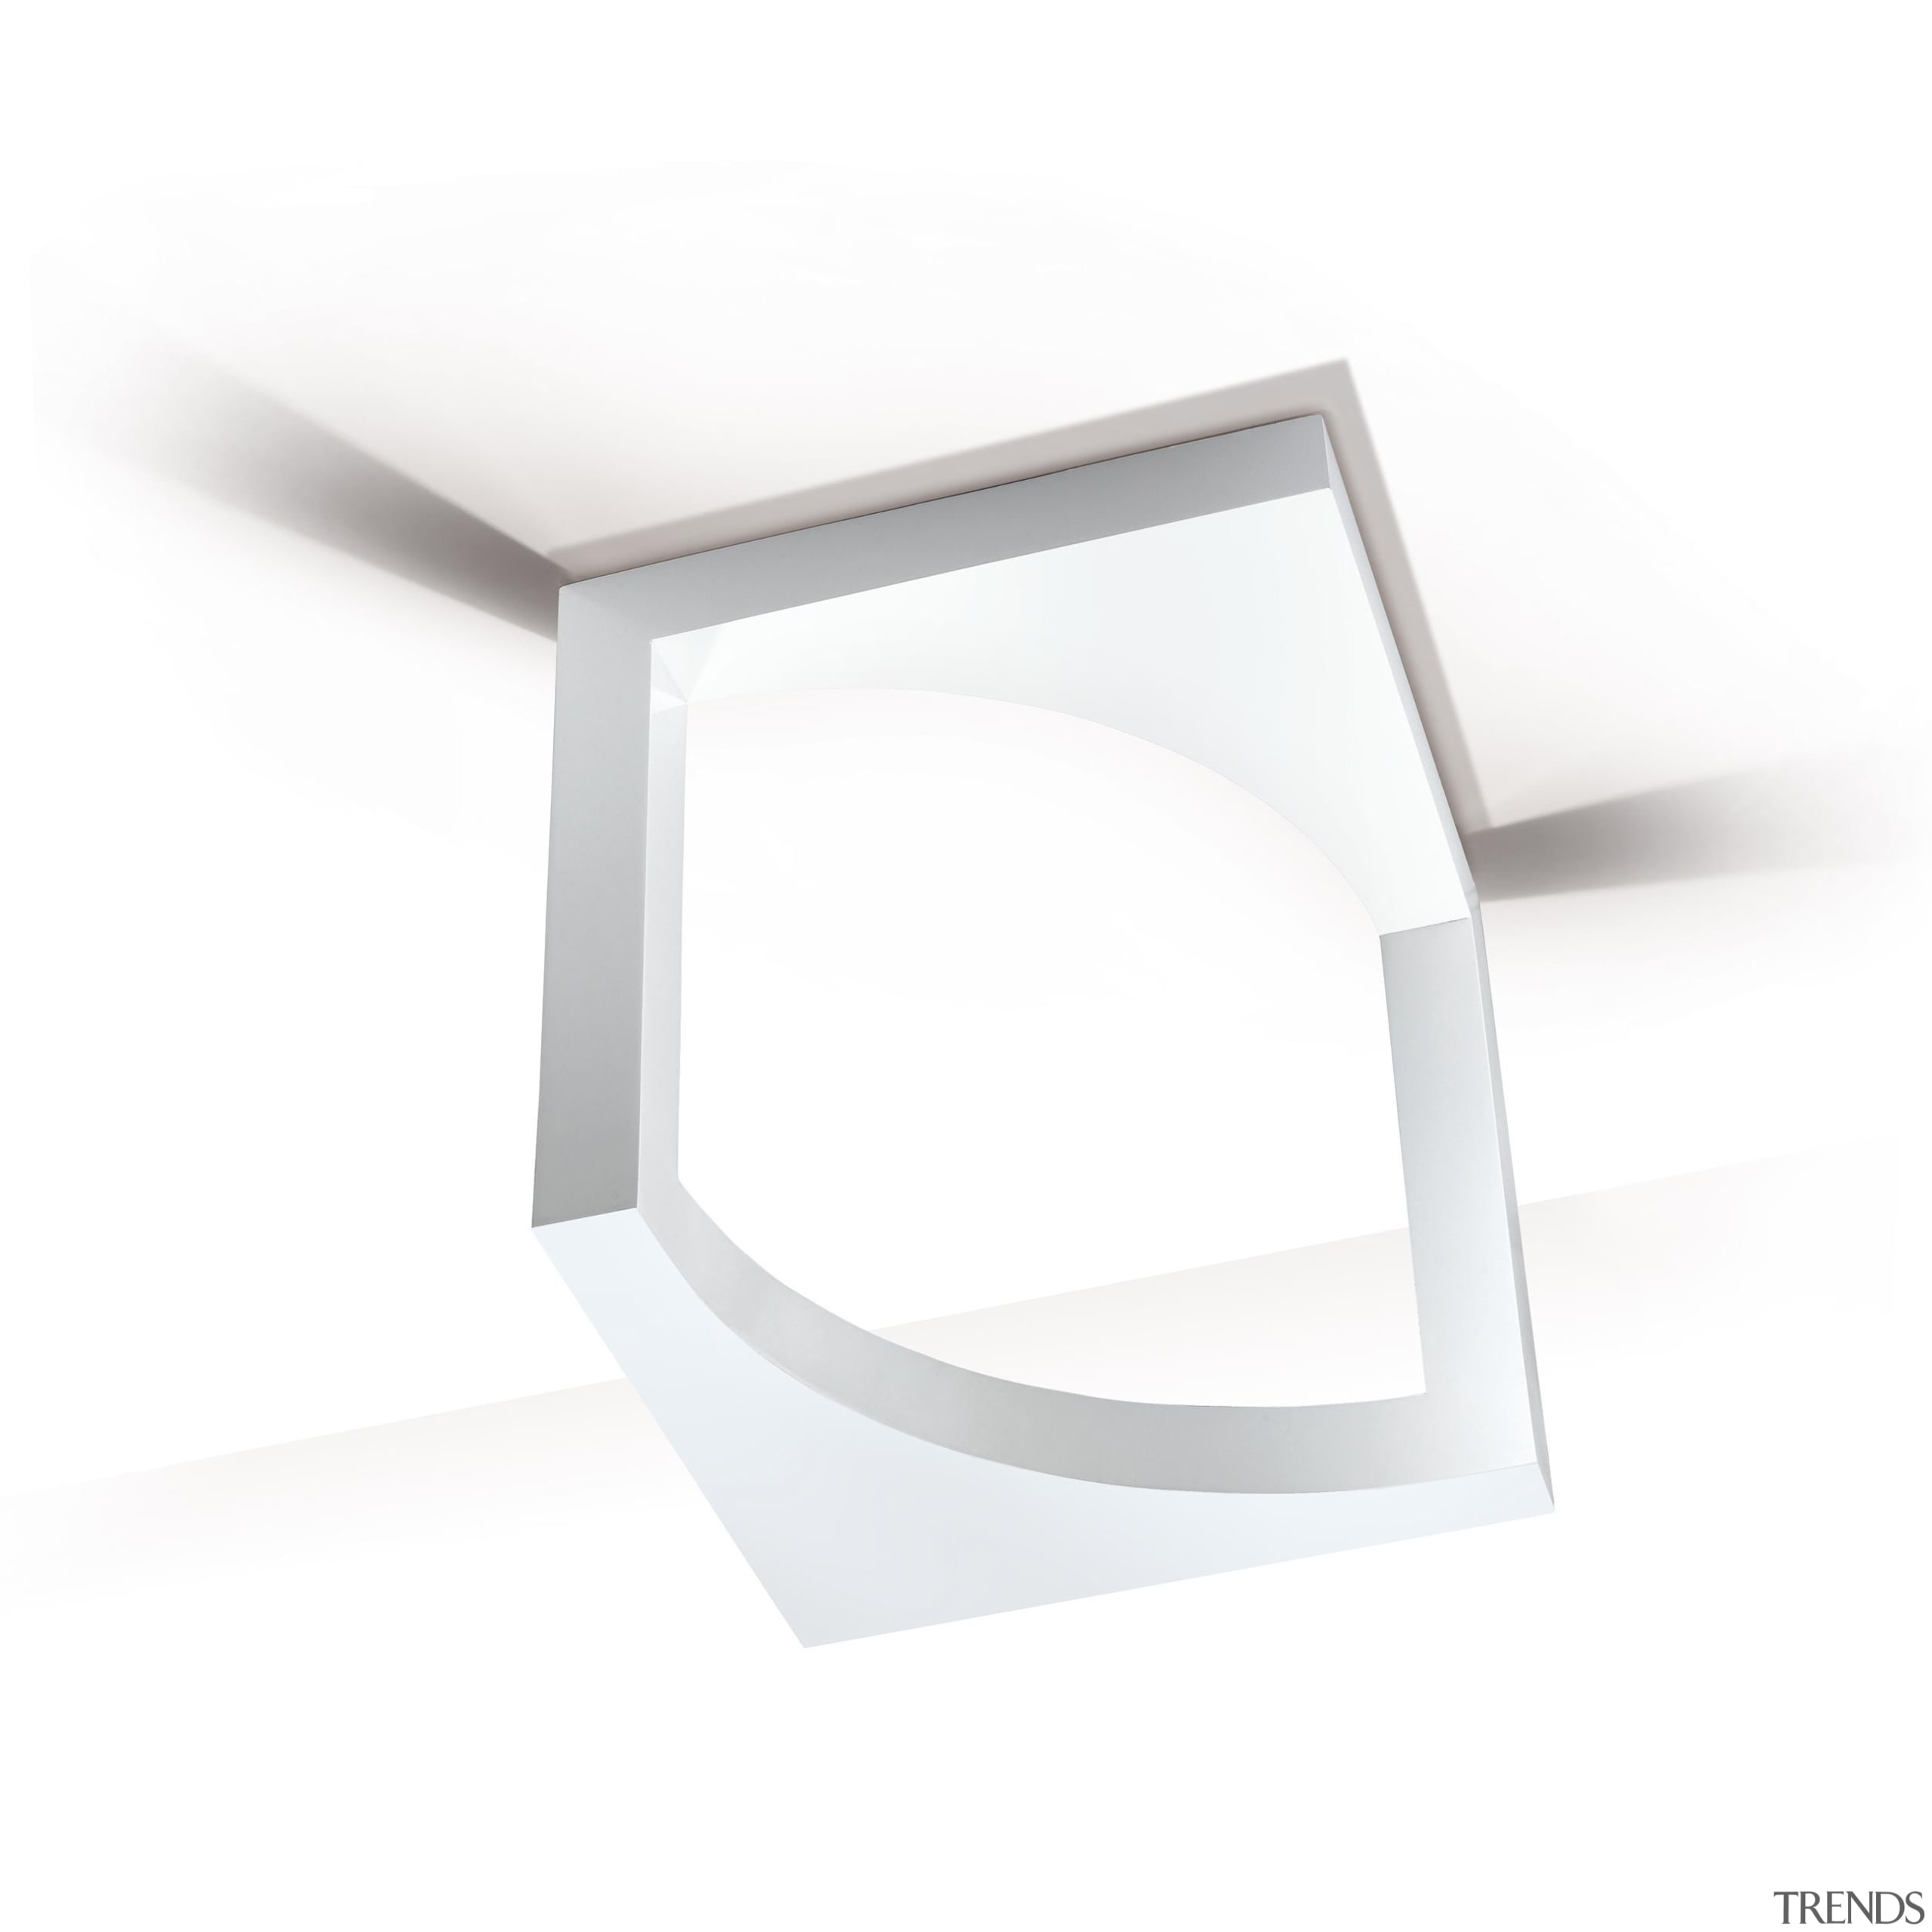 Ceiling Lights - Ceiling Lights - angle | angle, furniture, light, lighting, product design, table, white